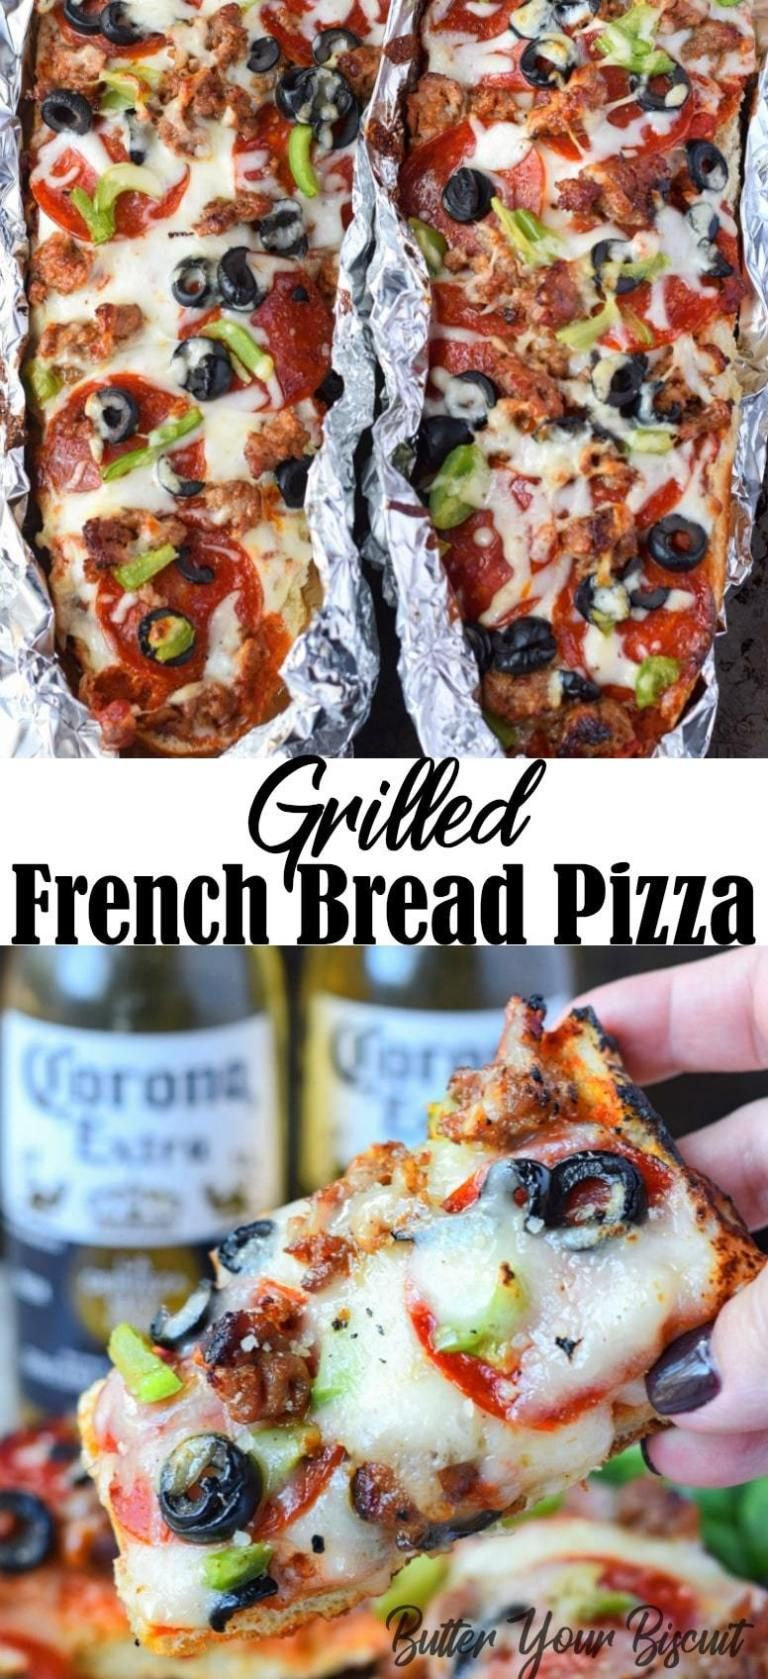 Grilled French Bread Pizza This Grilled french bread pizza recipe is loved by both kids and adults Loaded with all your favorites and cooked to crisp cheesy perfection